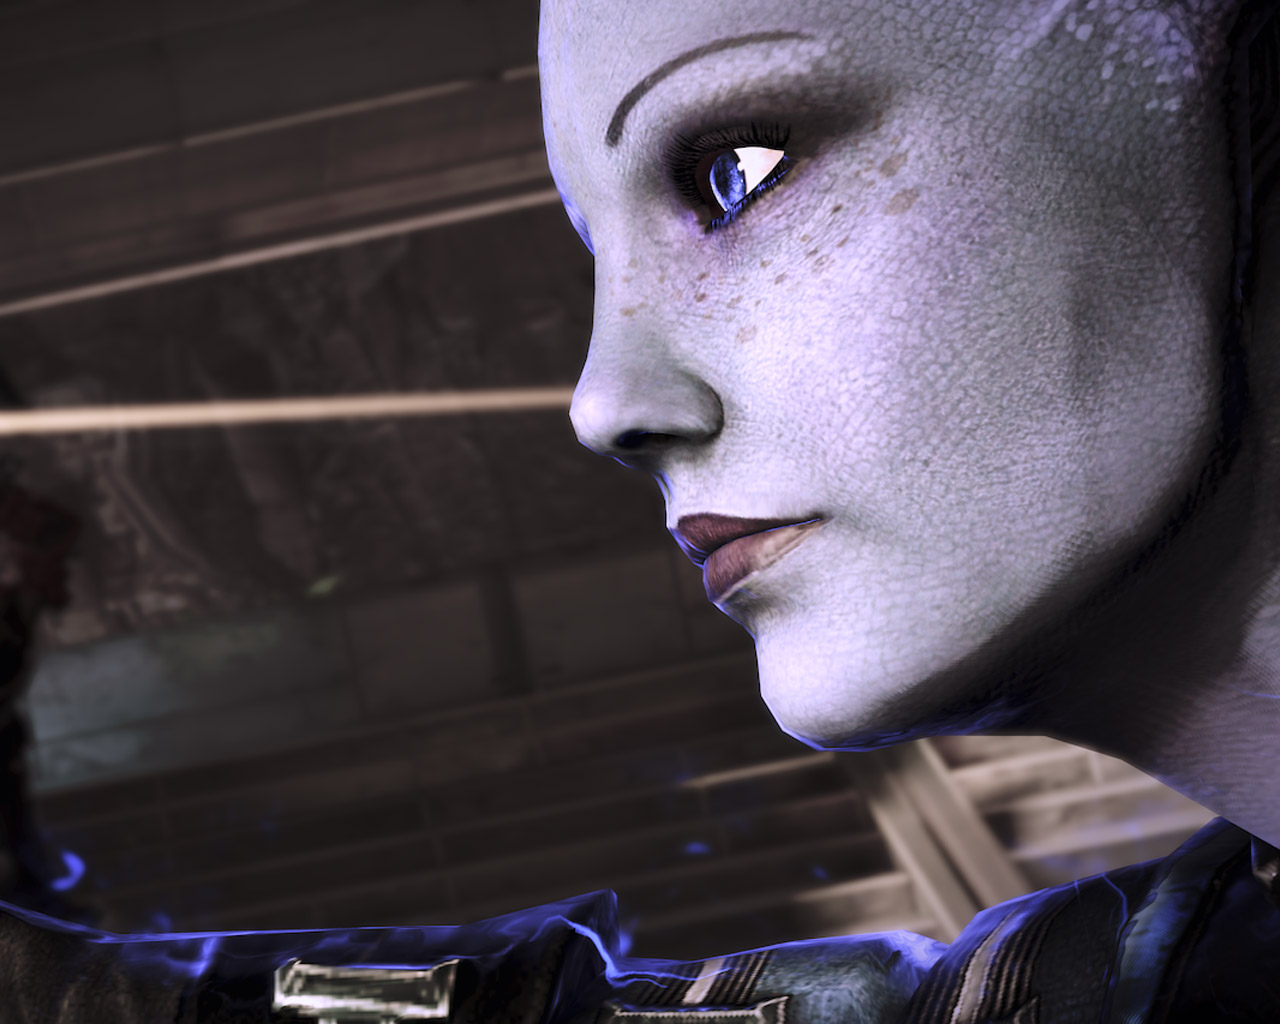 Free Mass Effect 3 Wallpaper in 1280x1024